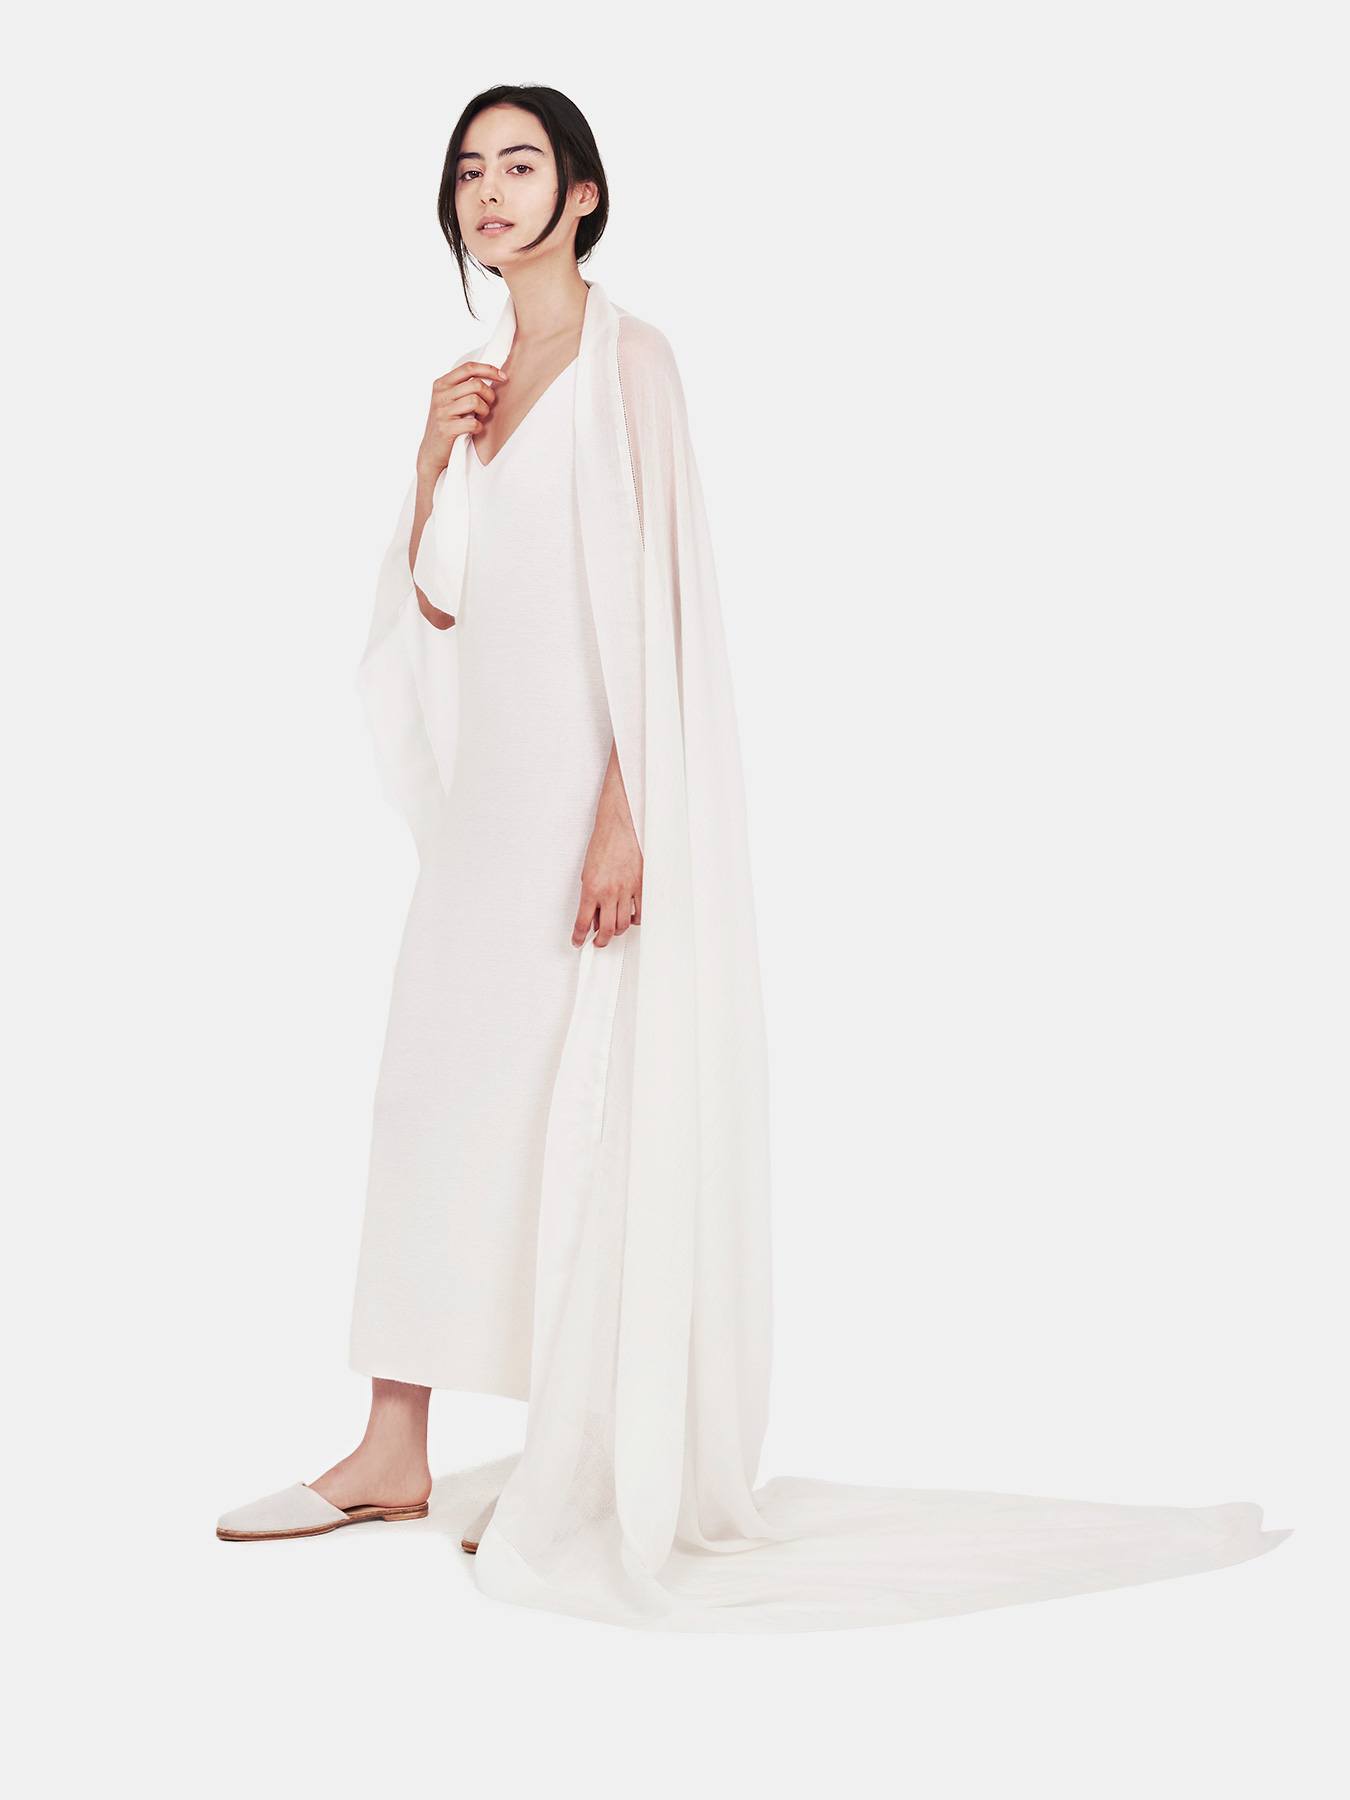 Feather-Cashmere-Wrap-Ivory-s.jpg